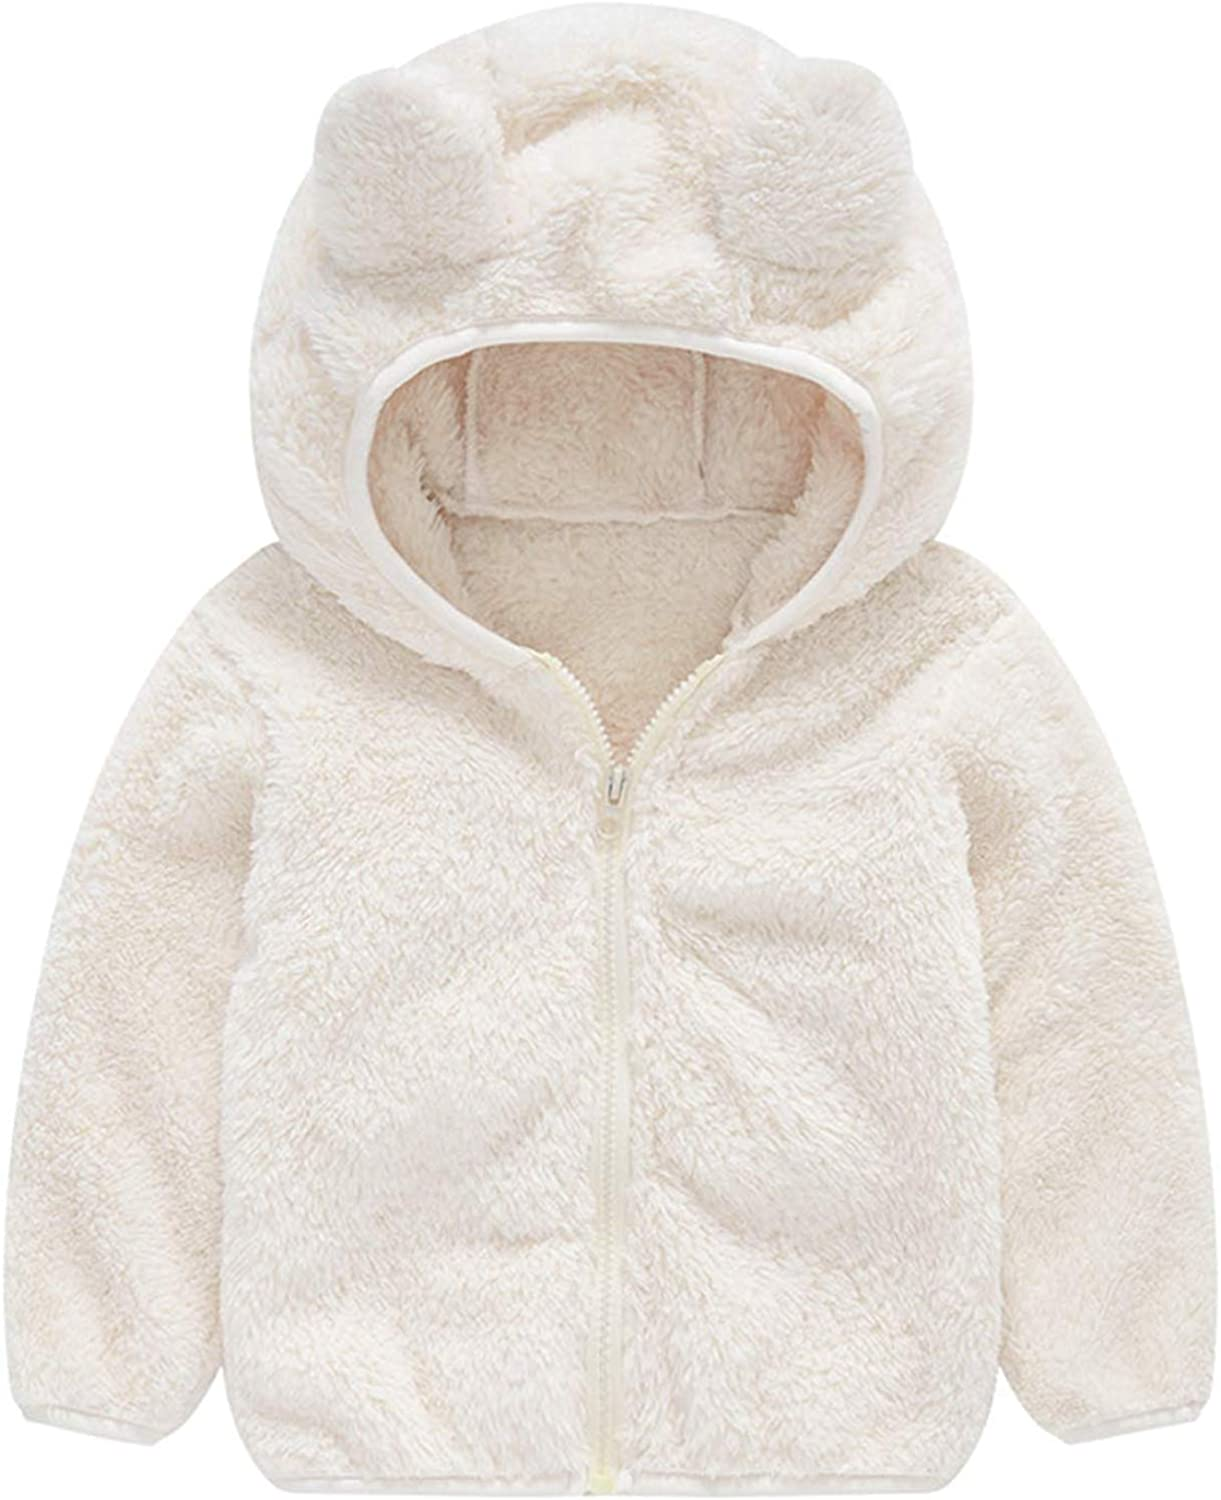 BOGIWELL Unisex Baby Girl Boy Autumn Winter Soft Furry Thick Bear Sweater Coat